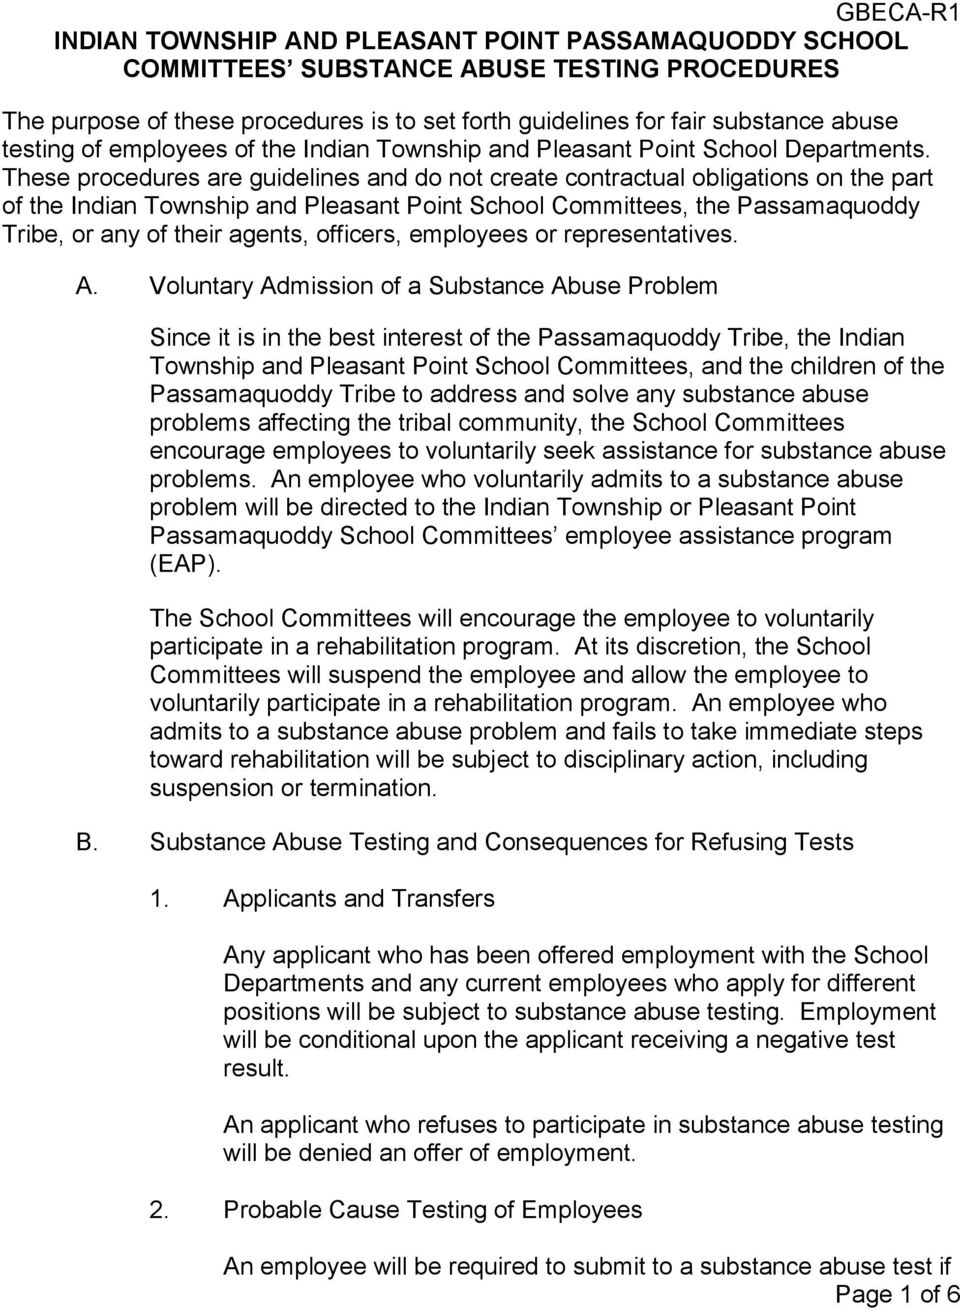 These procedures are guidelines and do not create contractual obligations on the part of the Indian Township and Pleasant Point School Committees, the Passamaquoddy Tribe, or any of their agents,